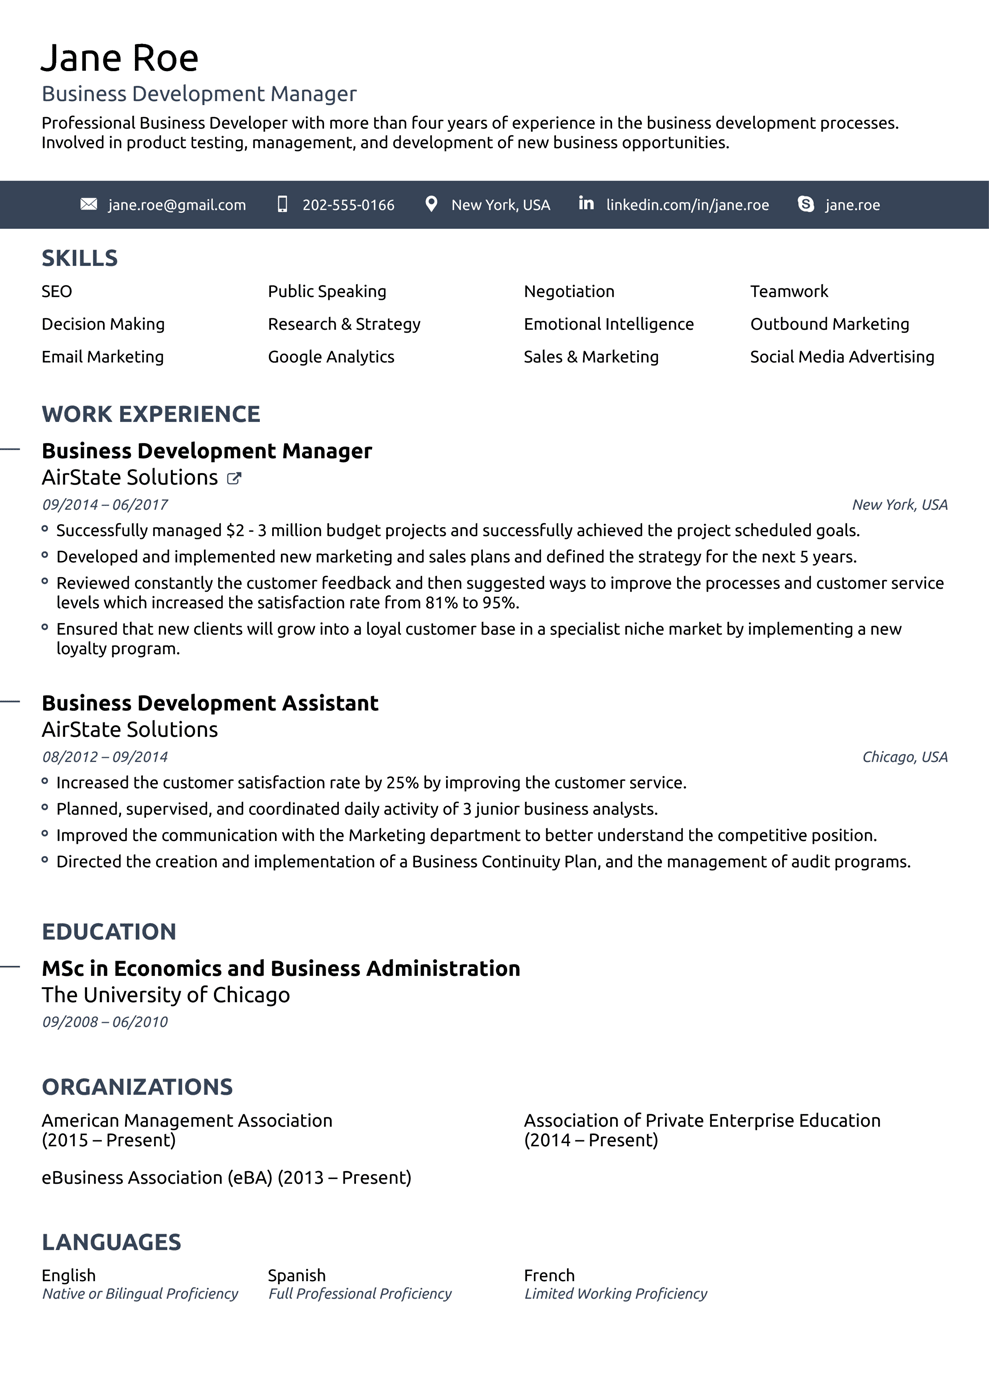 Resume Delectable 448 Professional Resume Templates As They Should Be [48]